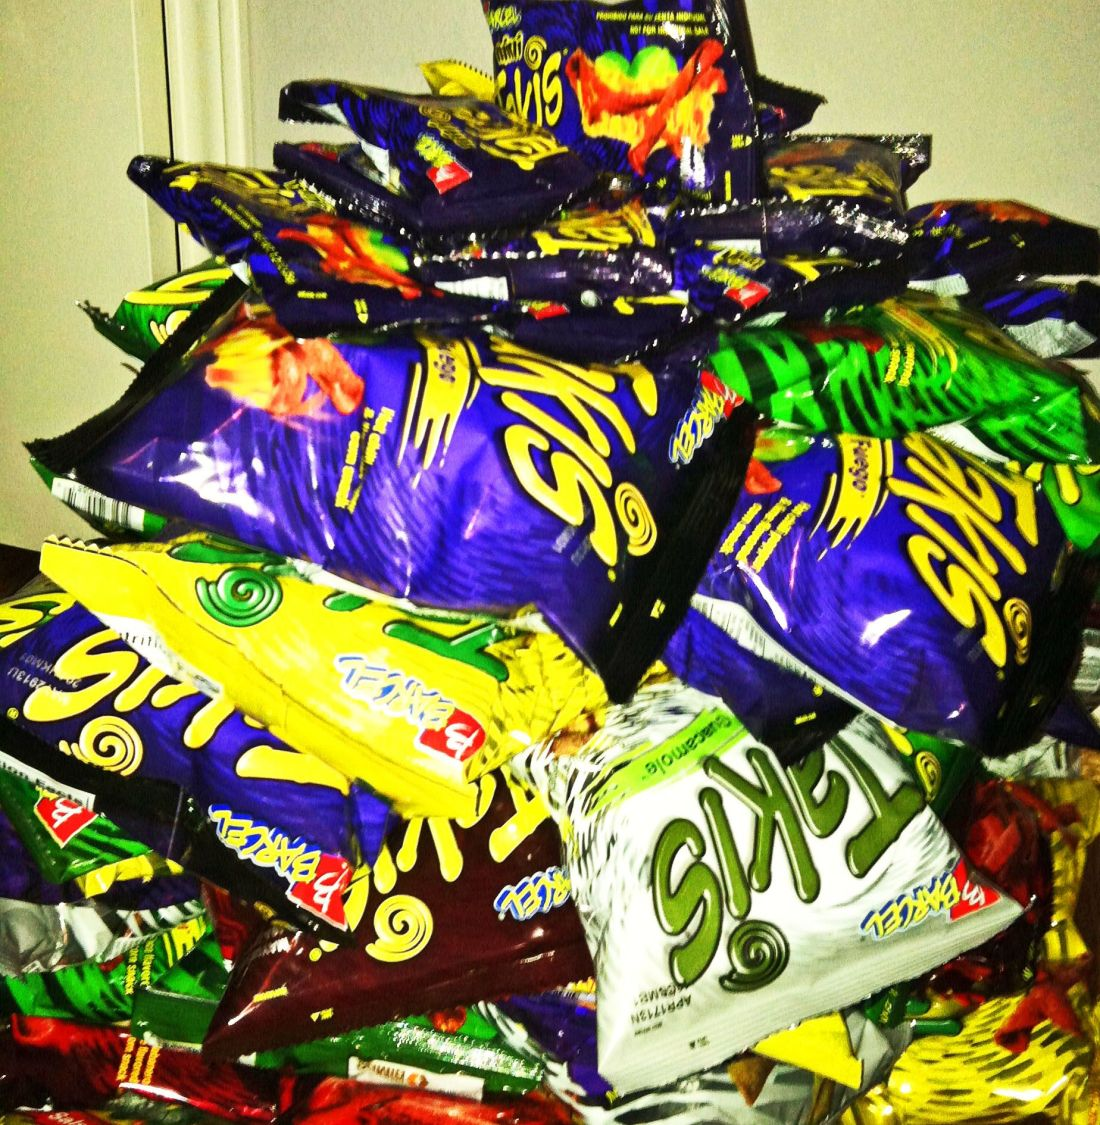 All stocked up to end 2012 with a bang takis snacks